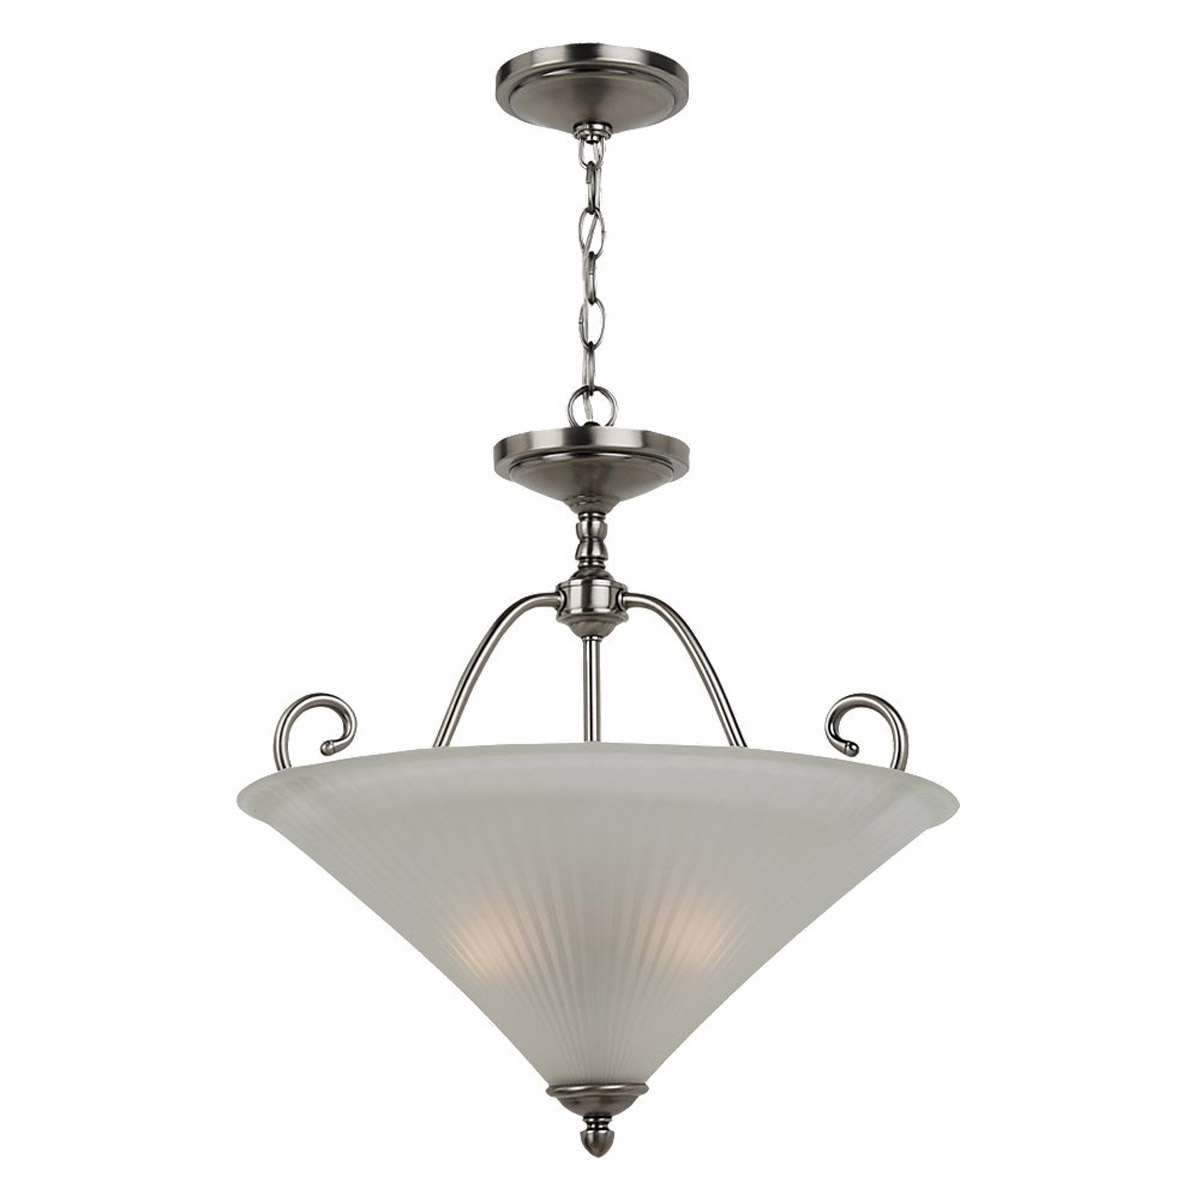 Sea Gull Lighting Joliet 3 Light Pendant Inverted in Antique Brushed Nickel 65936-965 photo